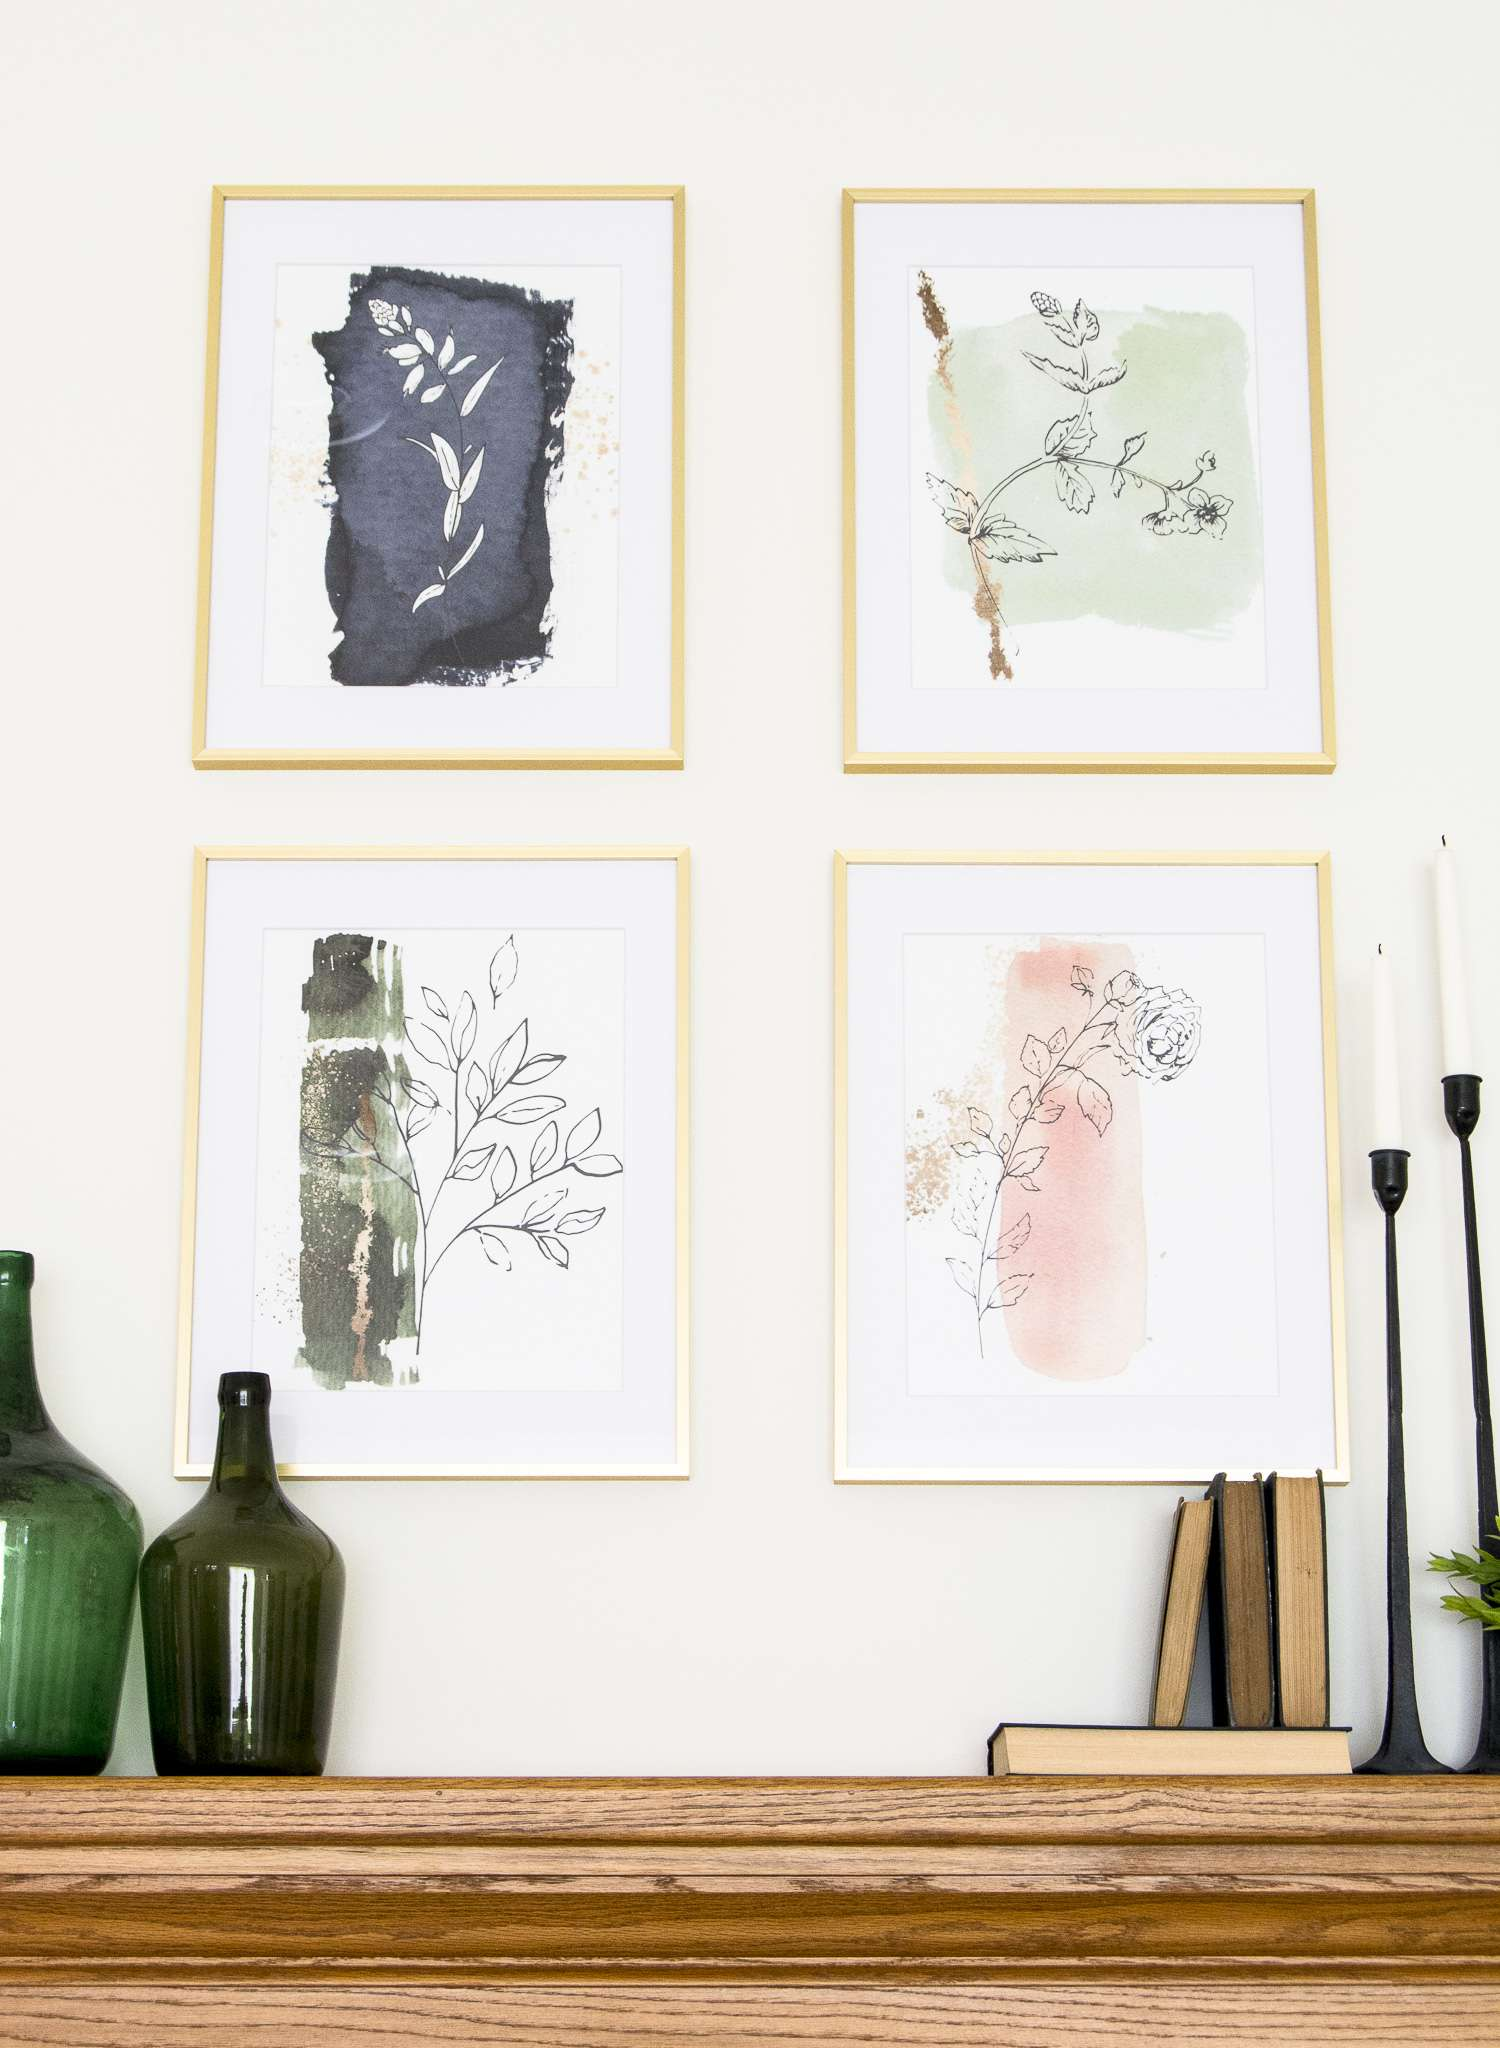 Are you looking for a unique way to add artwork to your home decor? Here is an affordable way you can create your own designs, plus 4 free botanical prints! #freeprints #botanicalartwork #DIYartwork